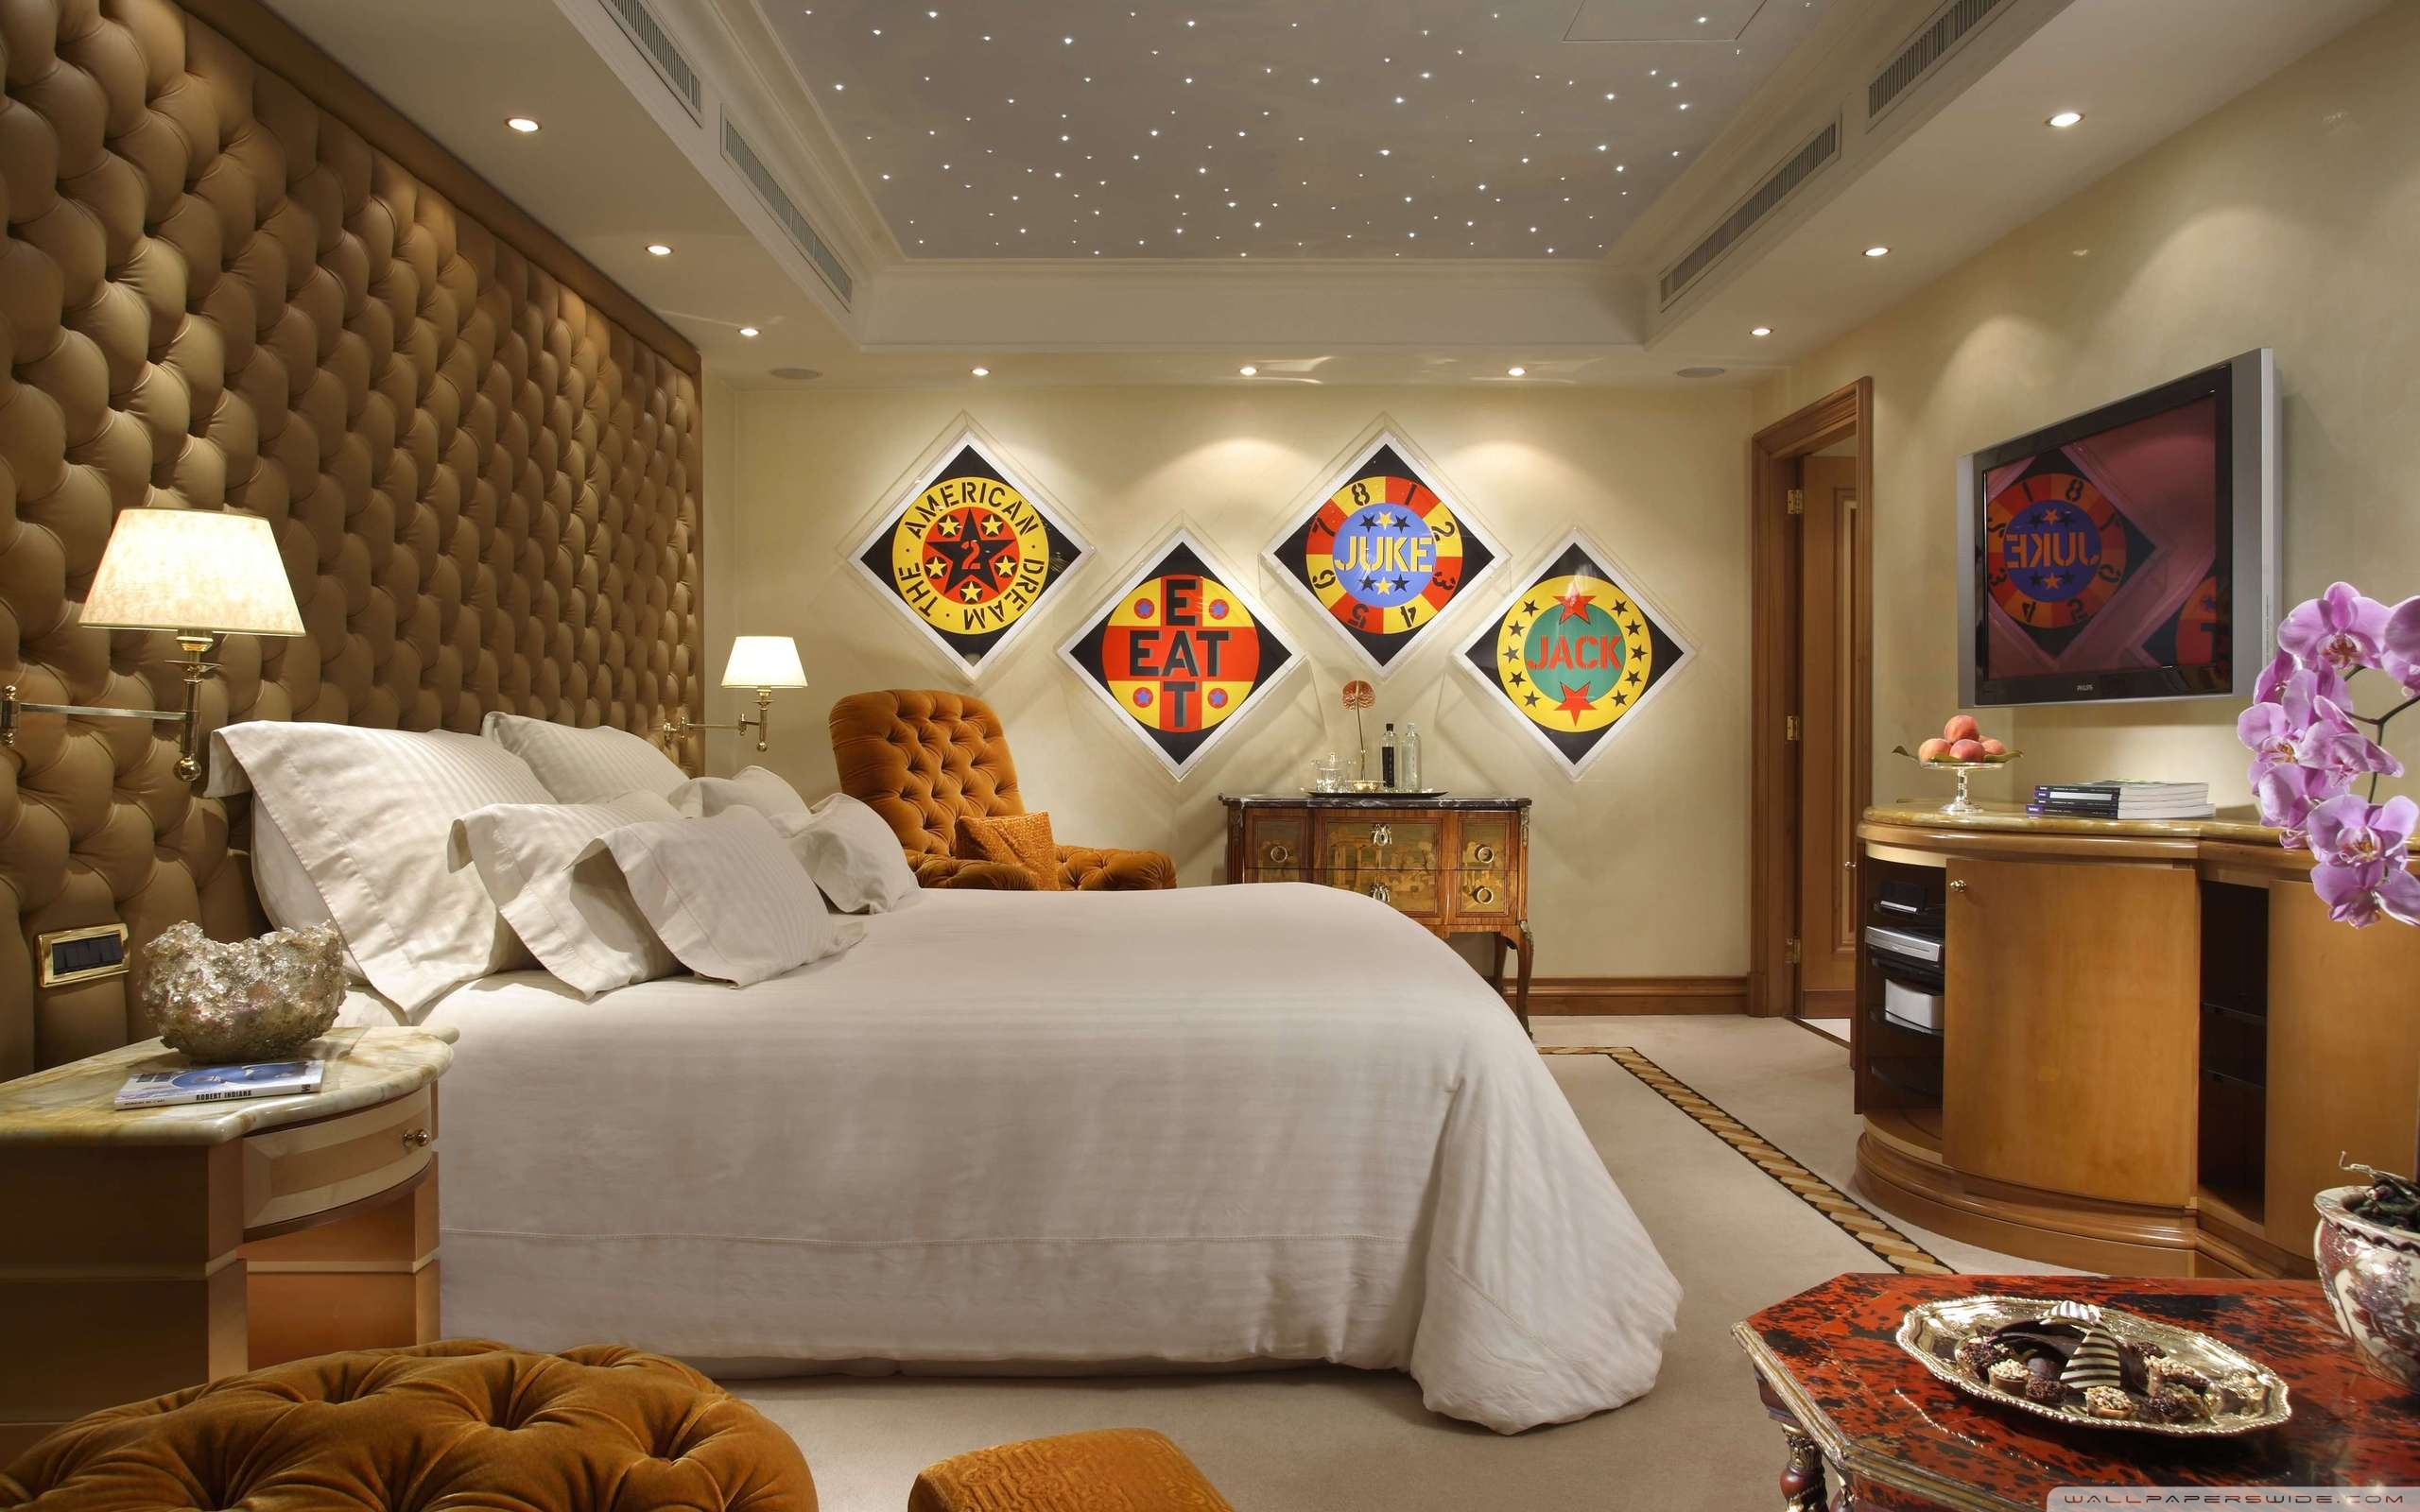 Bedroom Wallpaper Design Ideas wallpaper bedroom - large and beautiful photos. photo to select